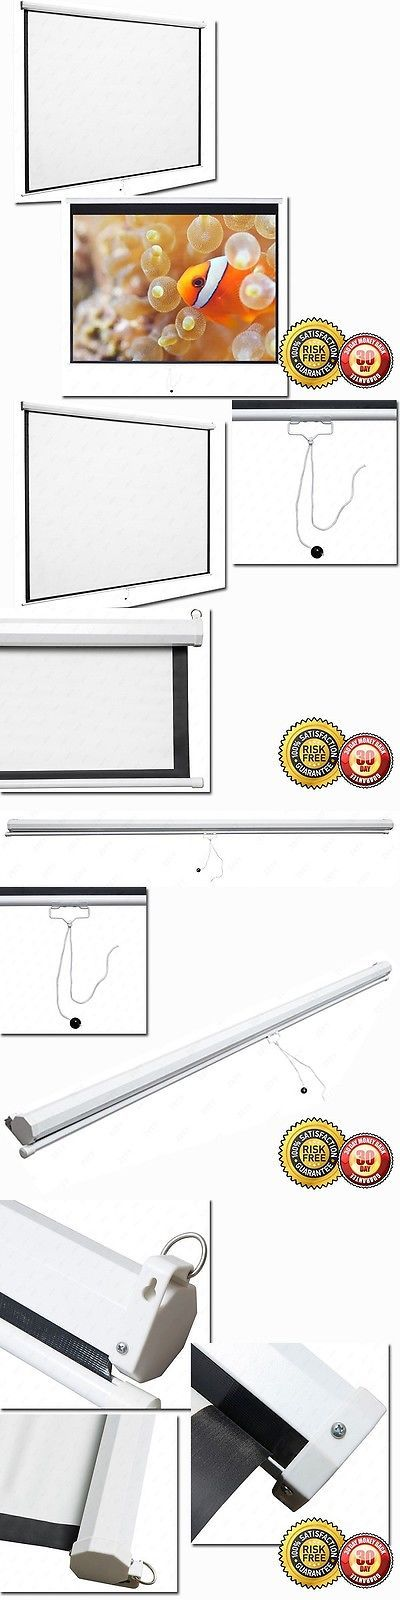 Projection Screens and Material: New 120 Portable Manual Projector Screen Pull Down Screen Home Movie Theater -> BUY IT NOW ONLY: $69.95 on eBay!